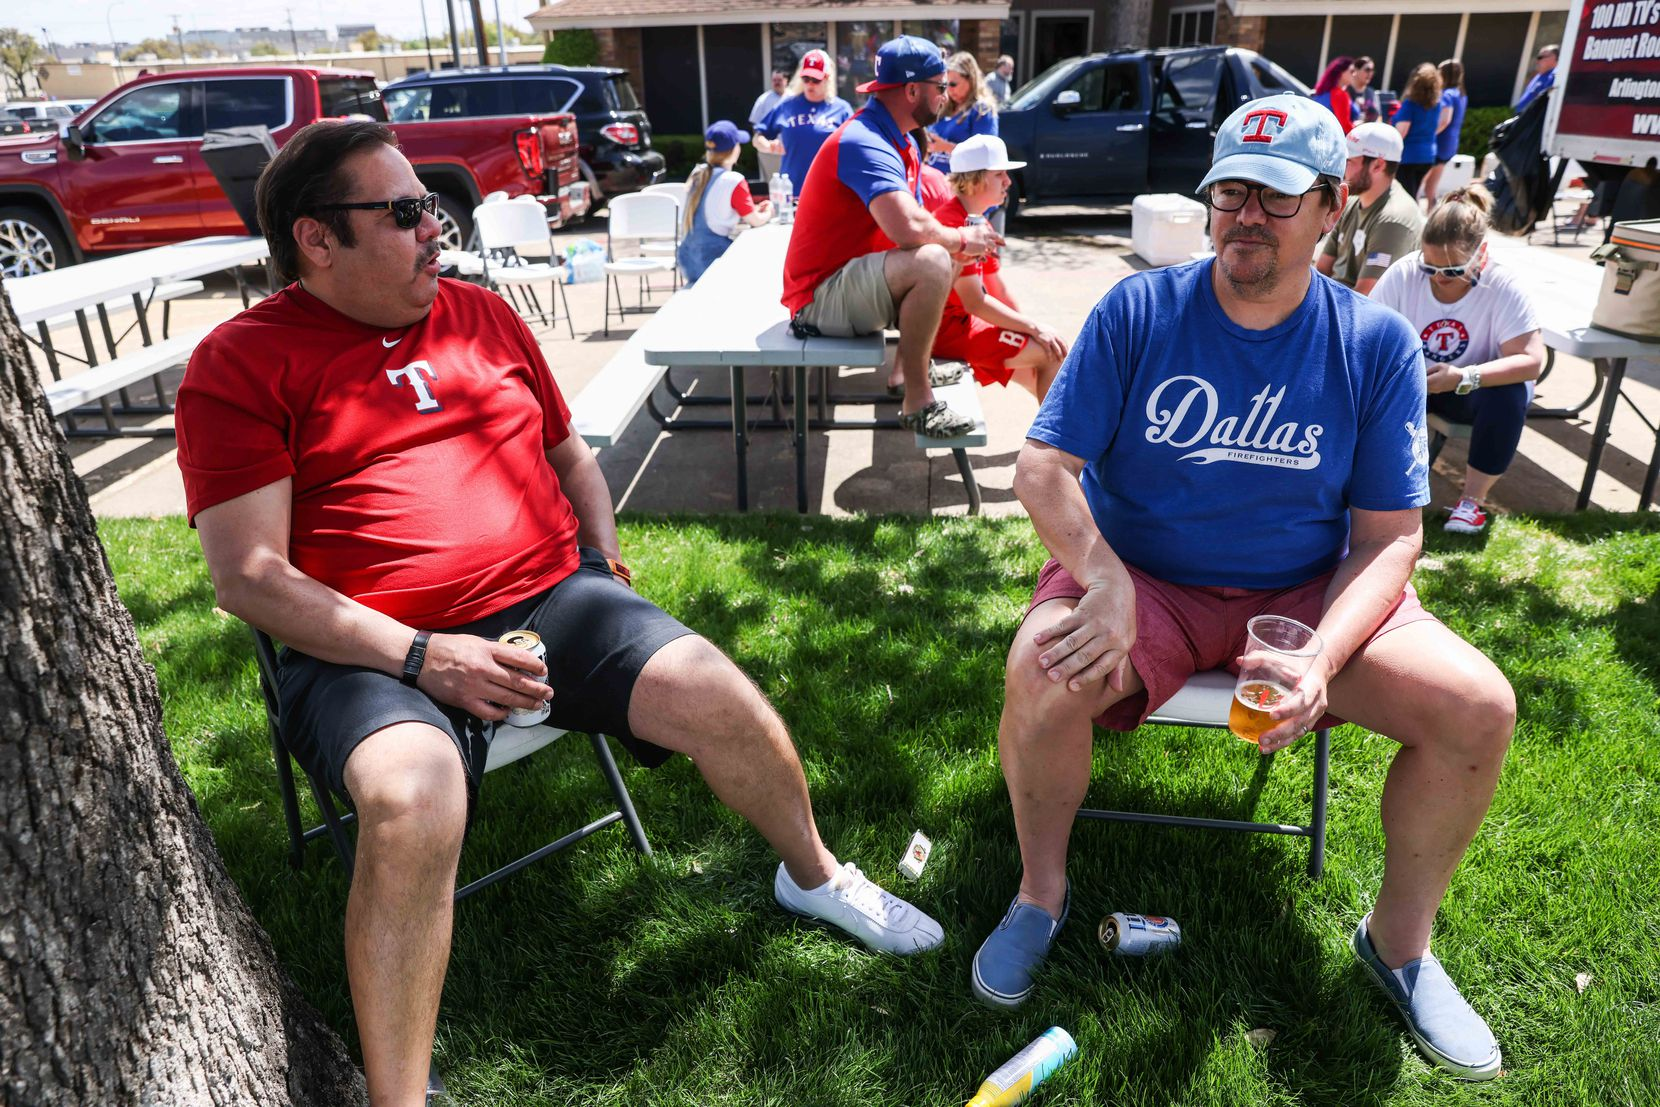 From left John Cantu and Justin Treaster talk about their experience before the game between Texas Rangers and Toronto Blue Jays on opening day outside the Globe Life Field in Arlington, Texas on Monday, April 5, 2021. (Lola Gomez/The Dallas Morning News)